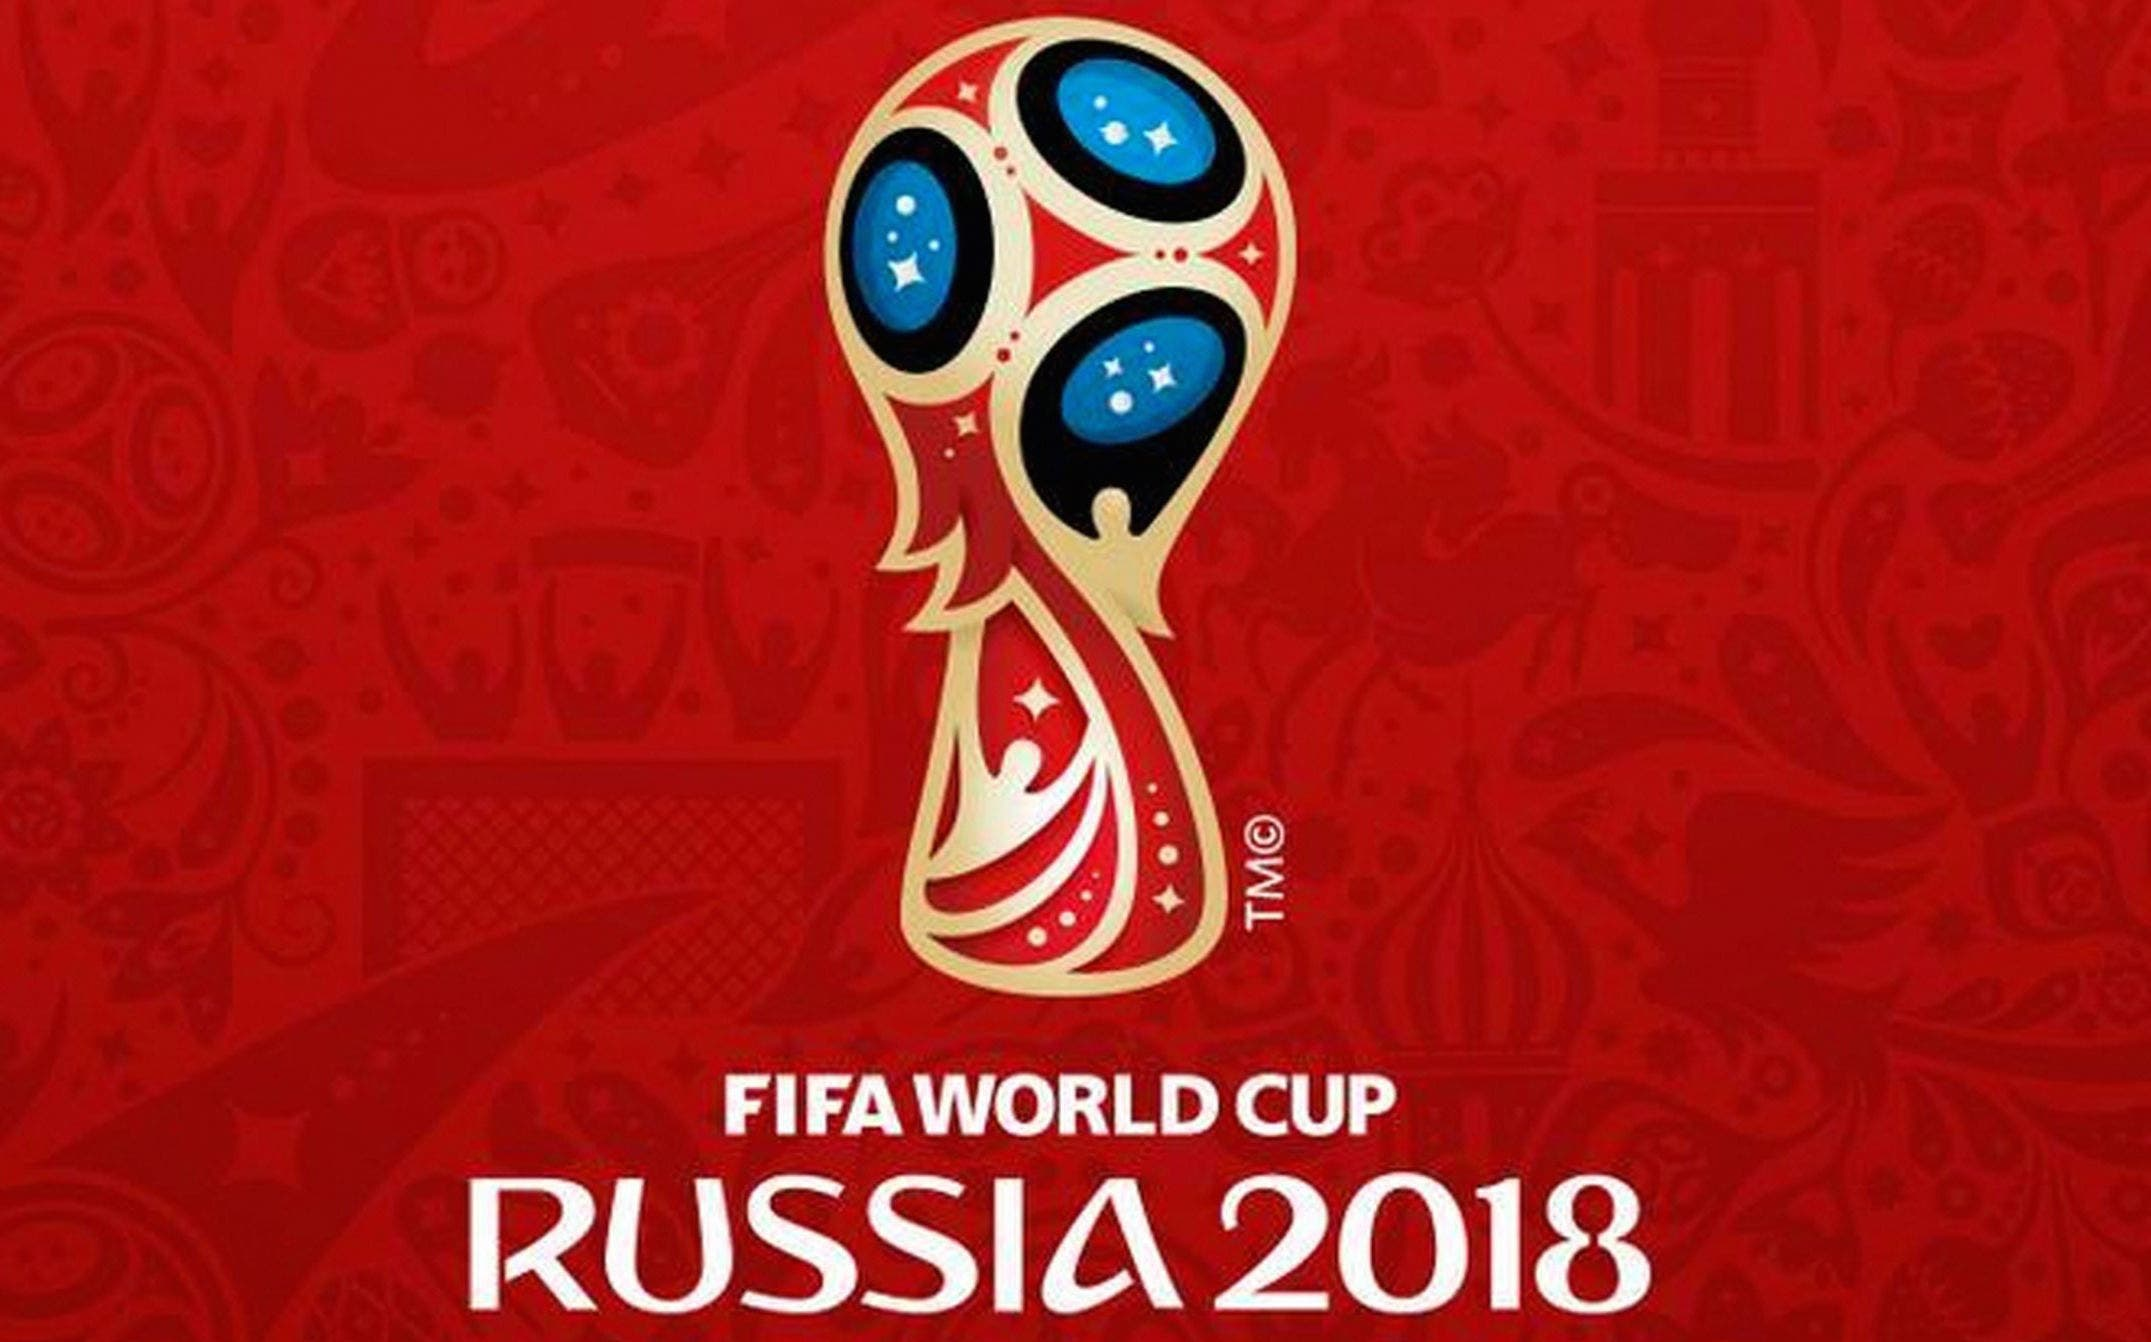 Top Fifa World Cup 2018 - World-Cup-2018-logo  Trends_124423 .jpg